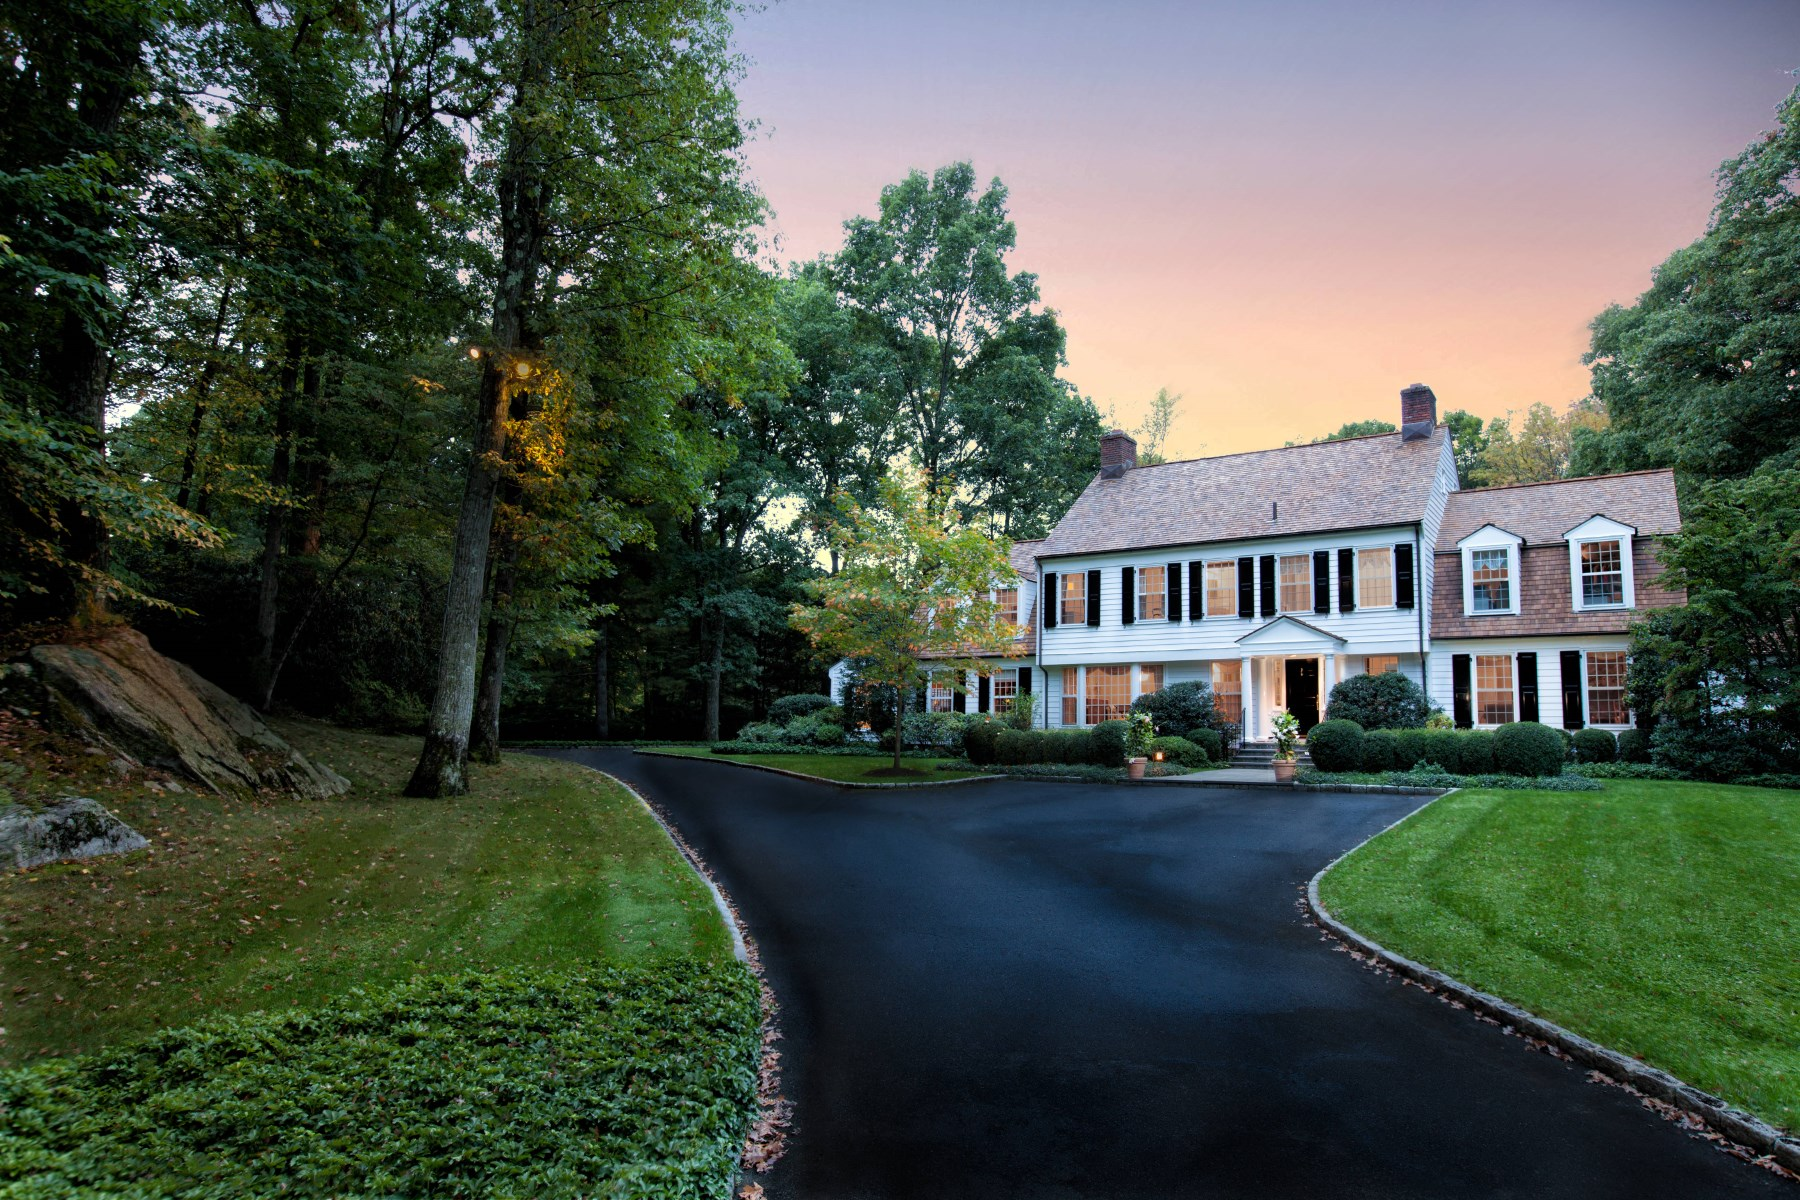 Single Family Home for Sale at 61 Baldwin Farms South, Greenwich South Of Parkway, Greenwich, Connecticut, 06831 United States